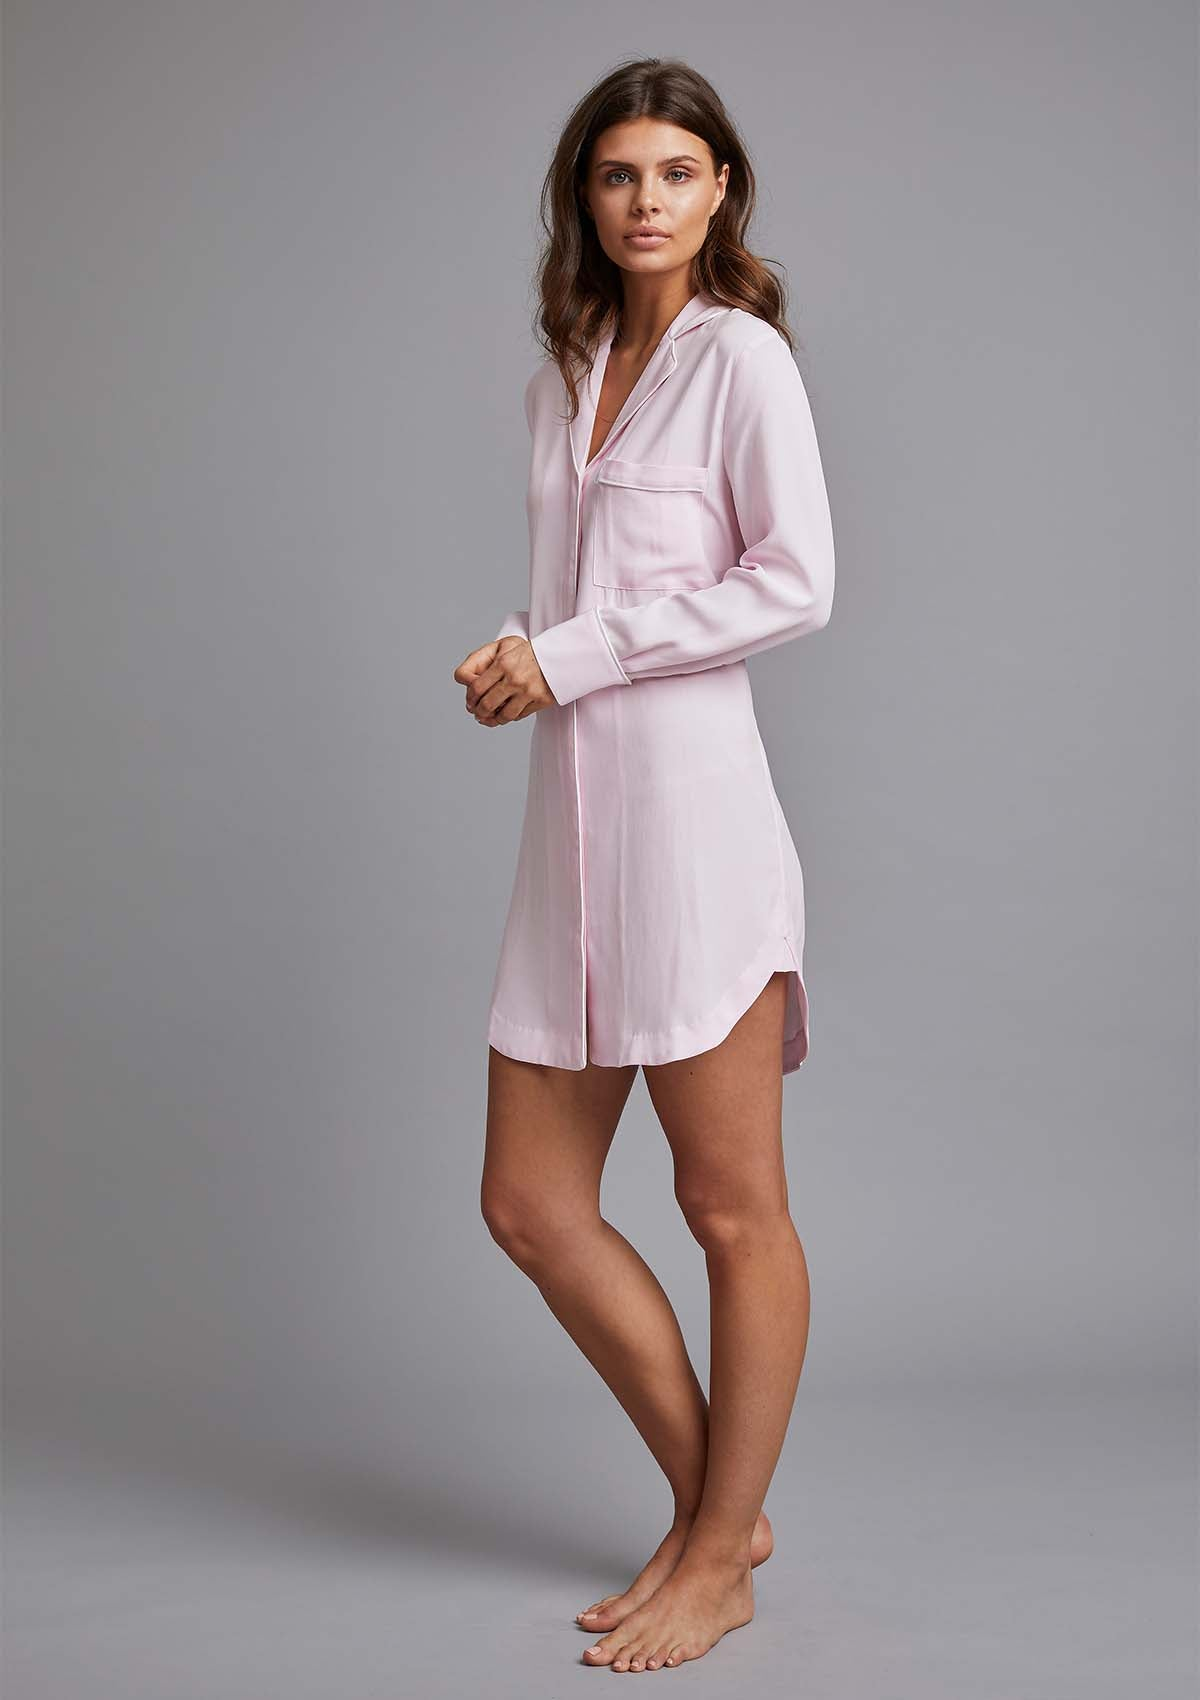 AVA NIGHTSHIRT in FLORIDA